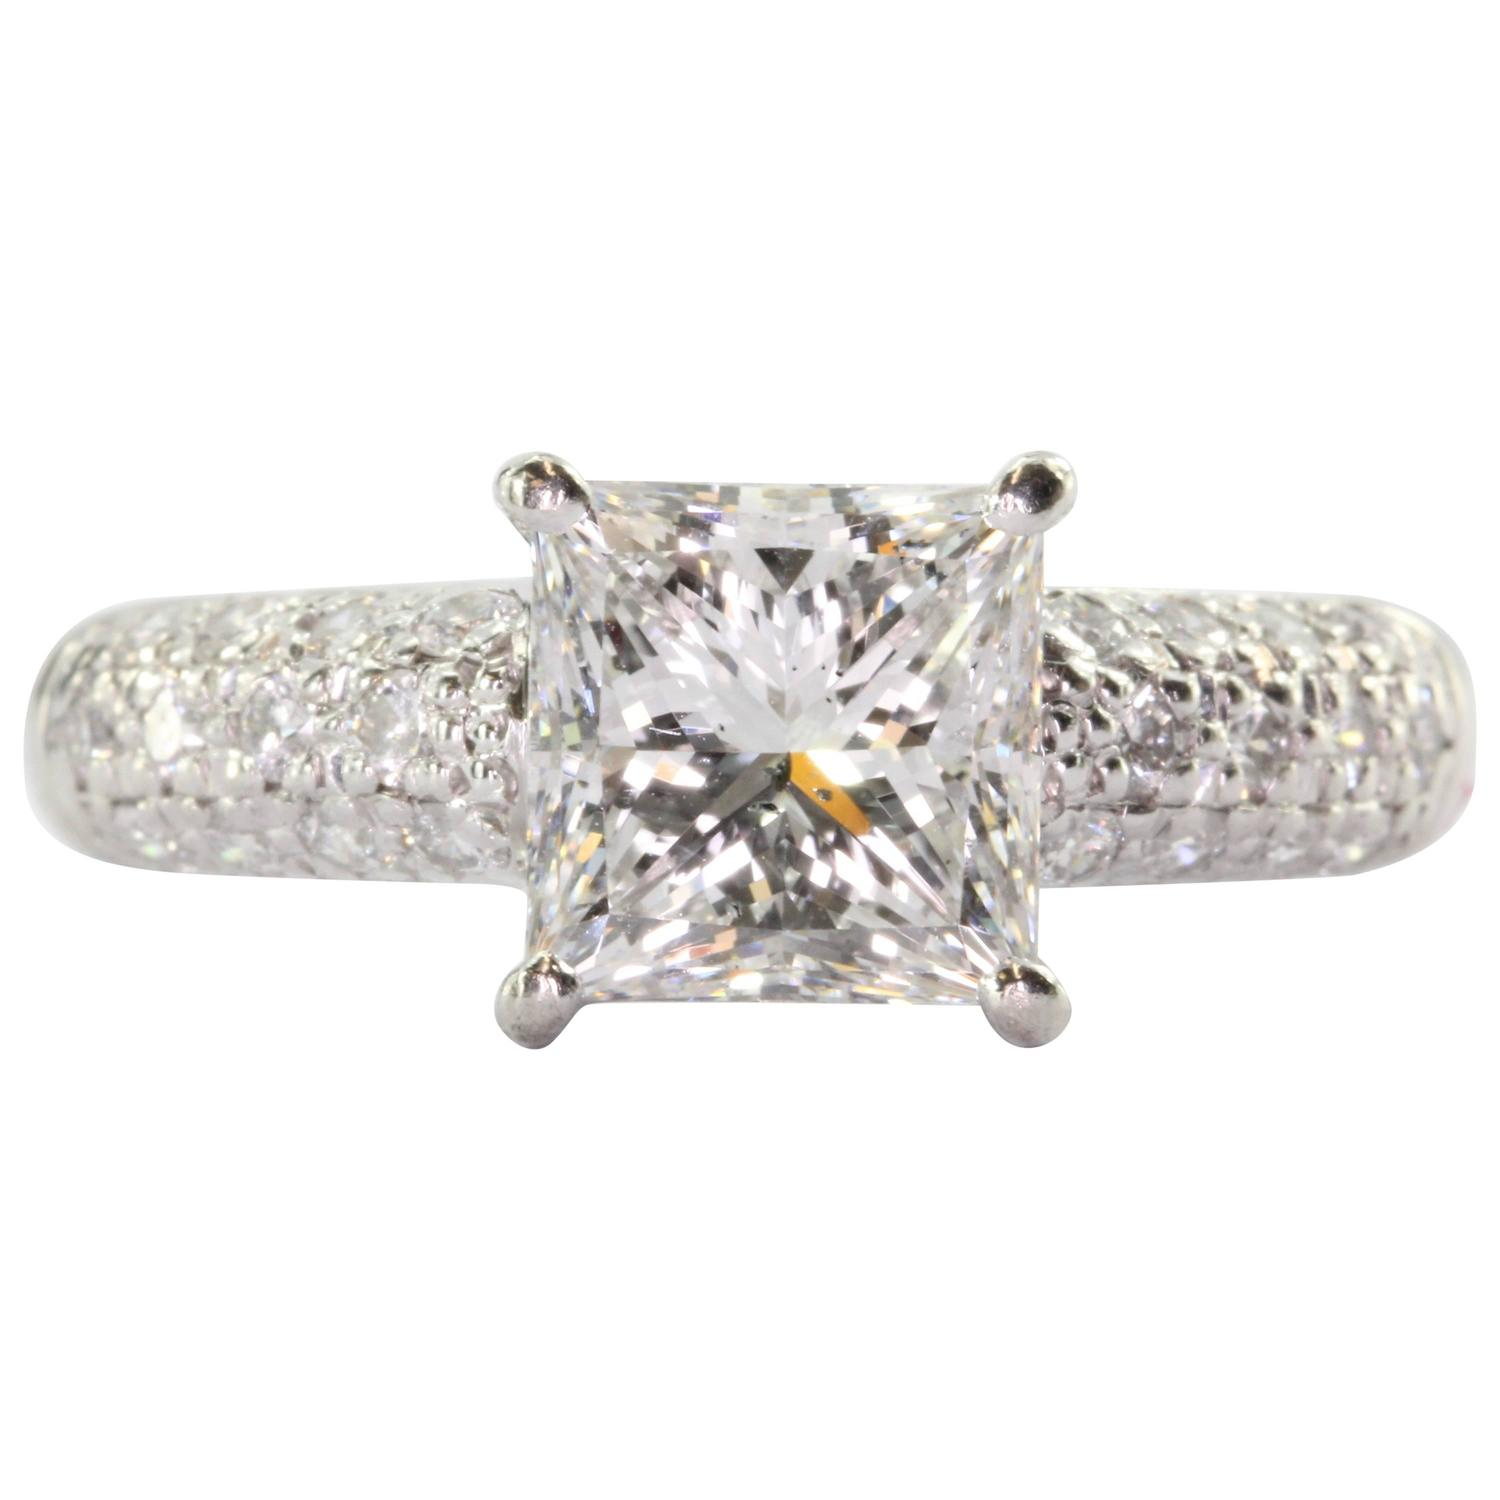 2 43 Carat Square Brilliant Cut Diamond Platinum Engagement Ring For Sale at